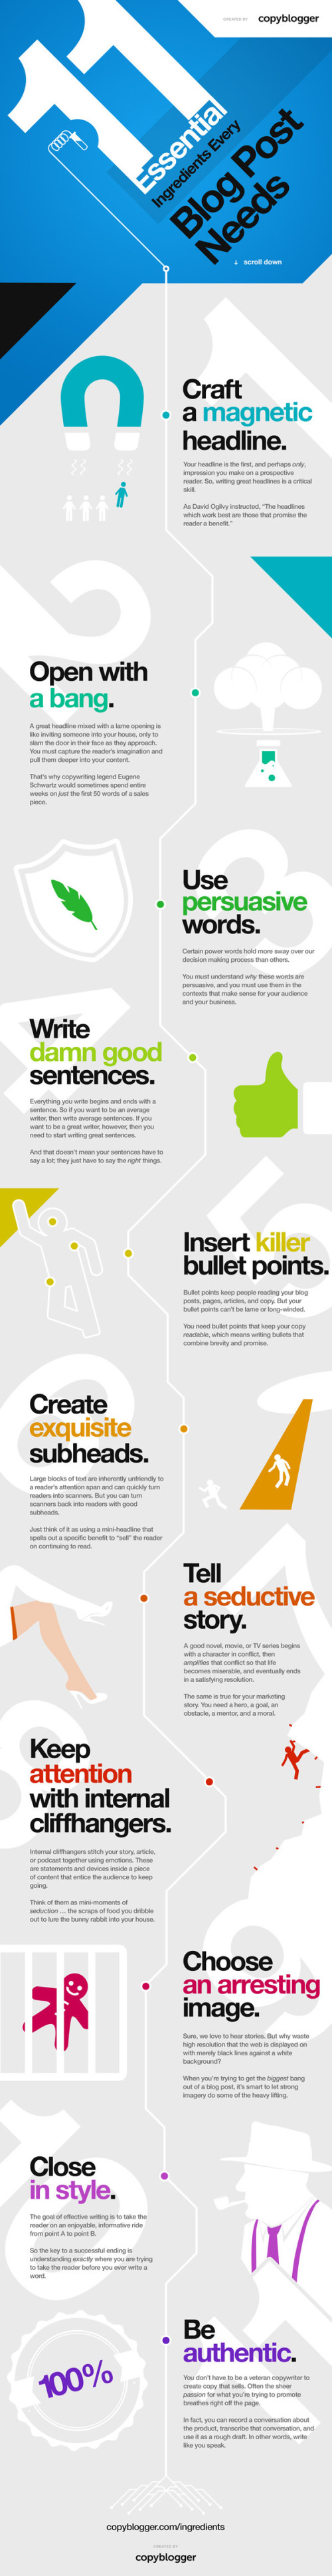 11 Essential Ingredients Every Blog Post Needs infographic